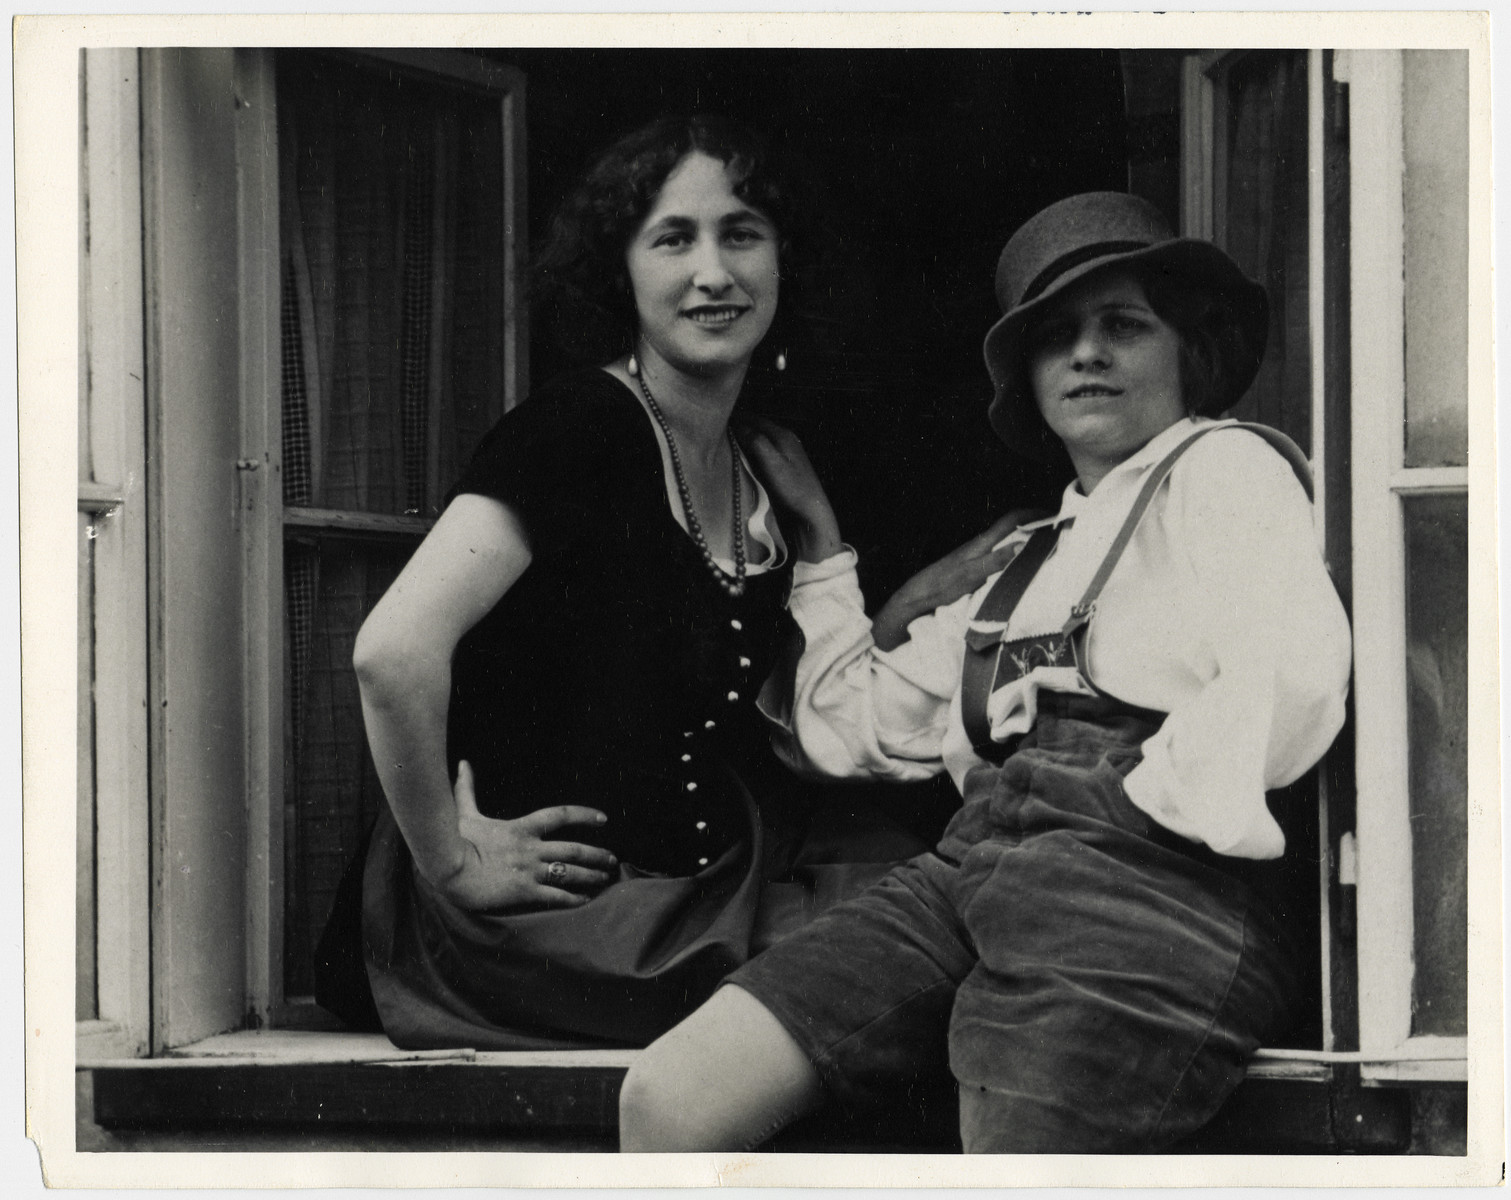 Two Austrian Jewish young women pose on a window ledge.  Martha Deustscher [later Holzmann] is pictured on the left.